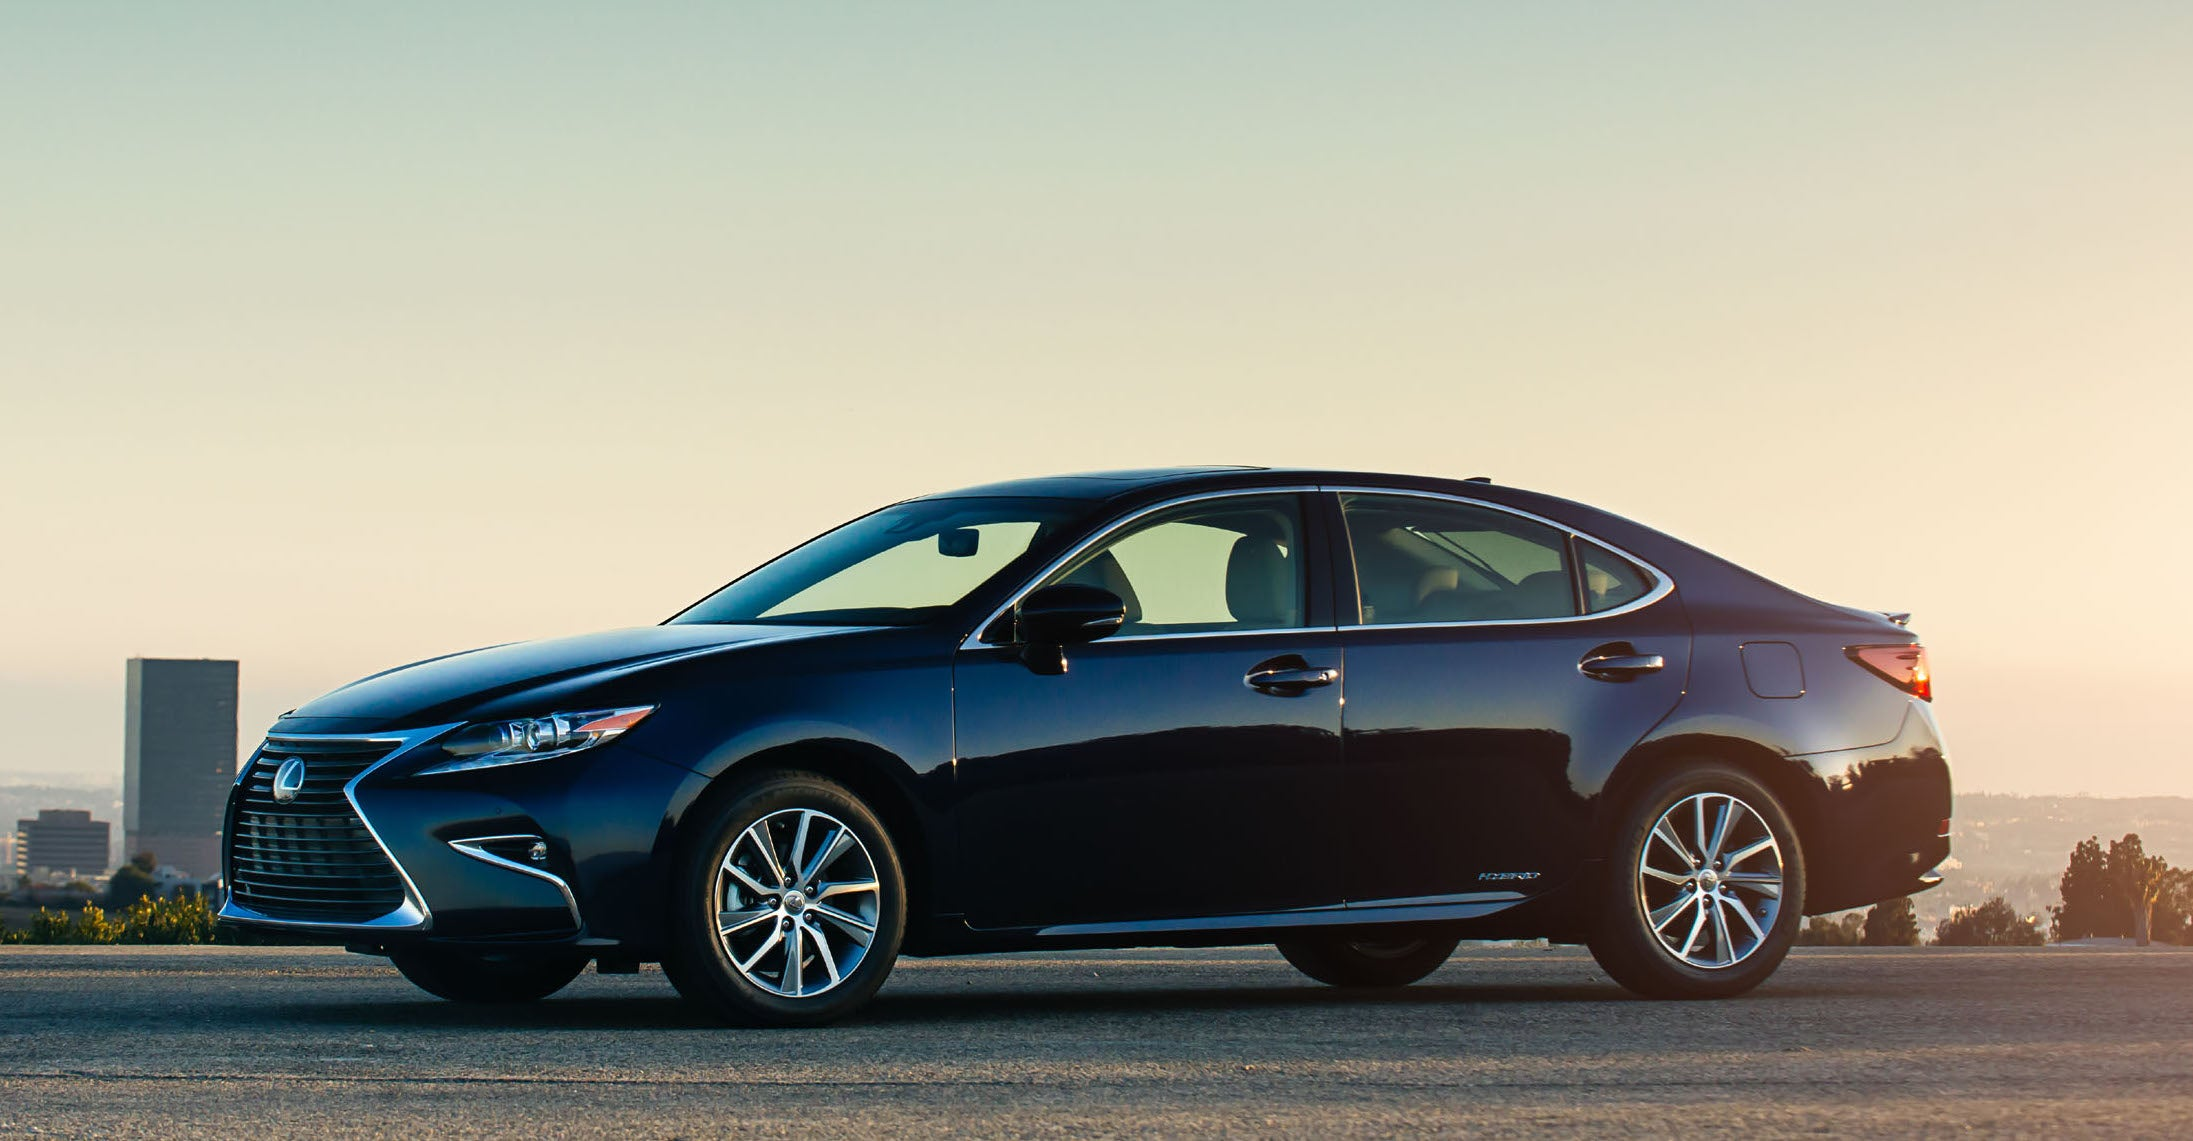 The 8 Most Fuel Efficient Family Sedans Of 2017 Each Gets At Least 40 Mpg Motley Fool